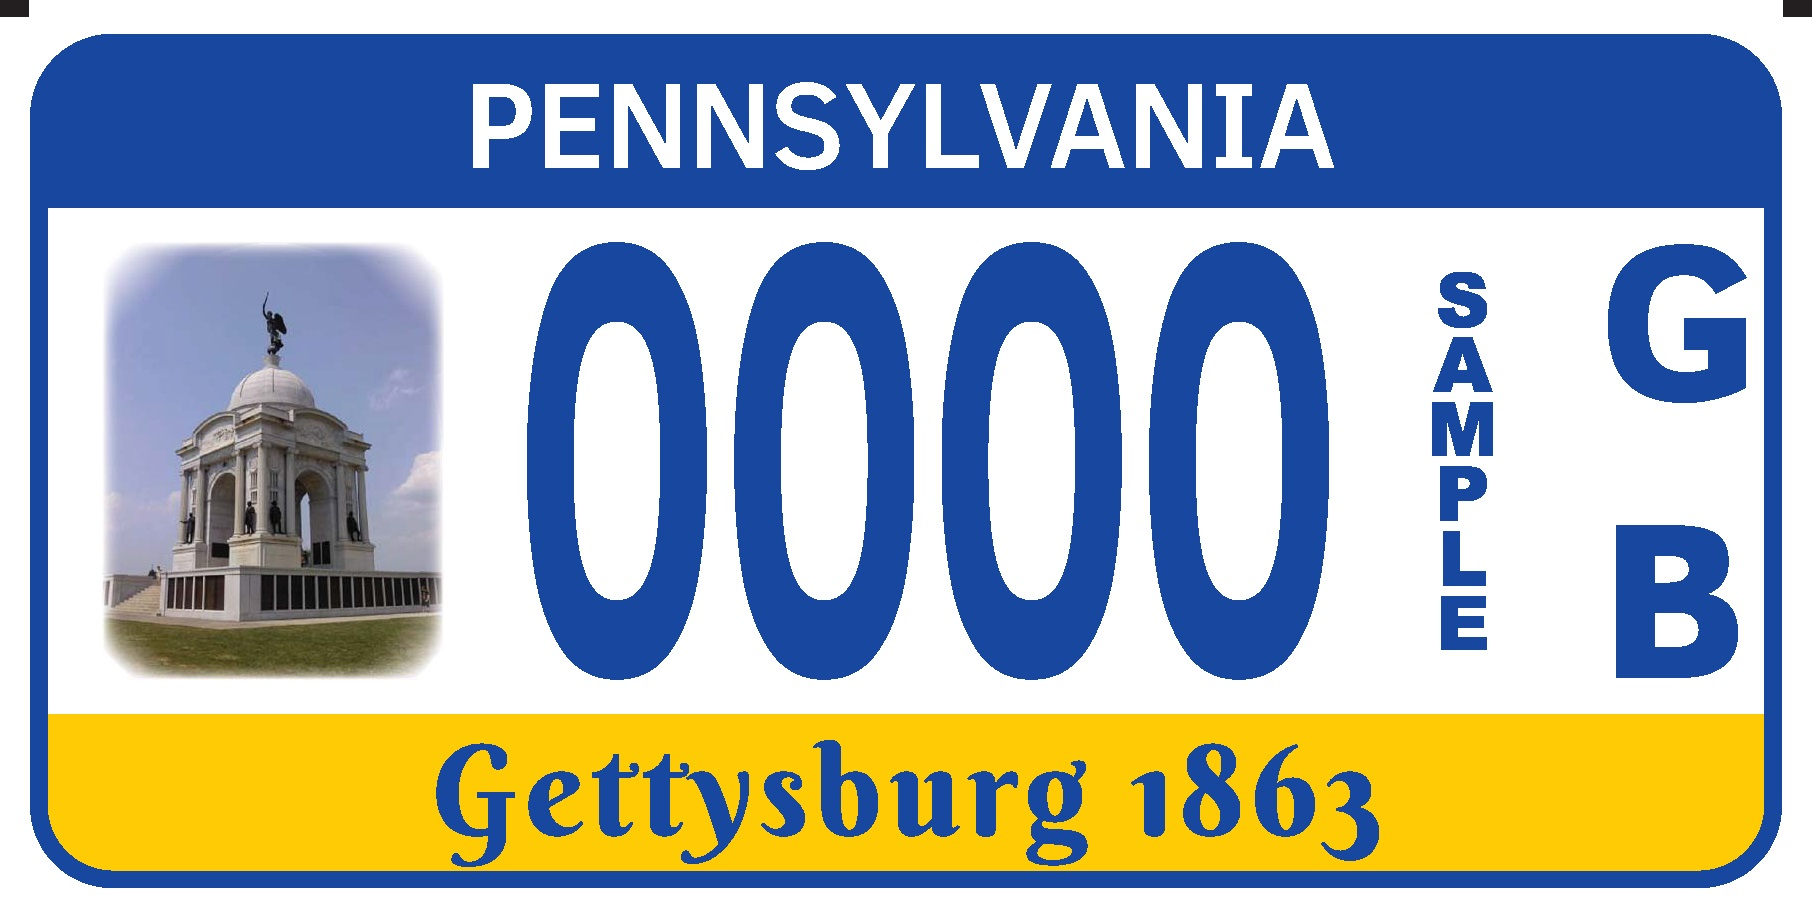 The Pennsylvania Monument License Plate